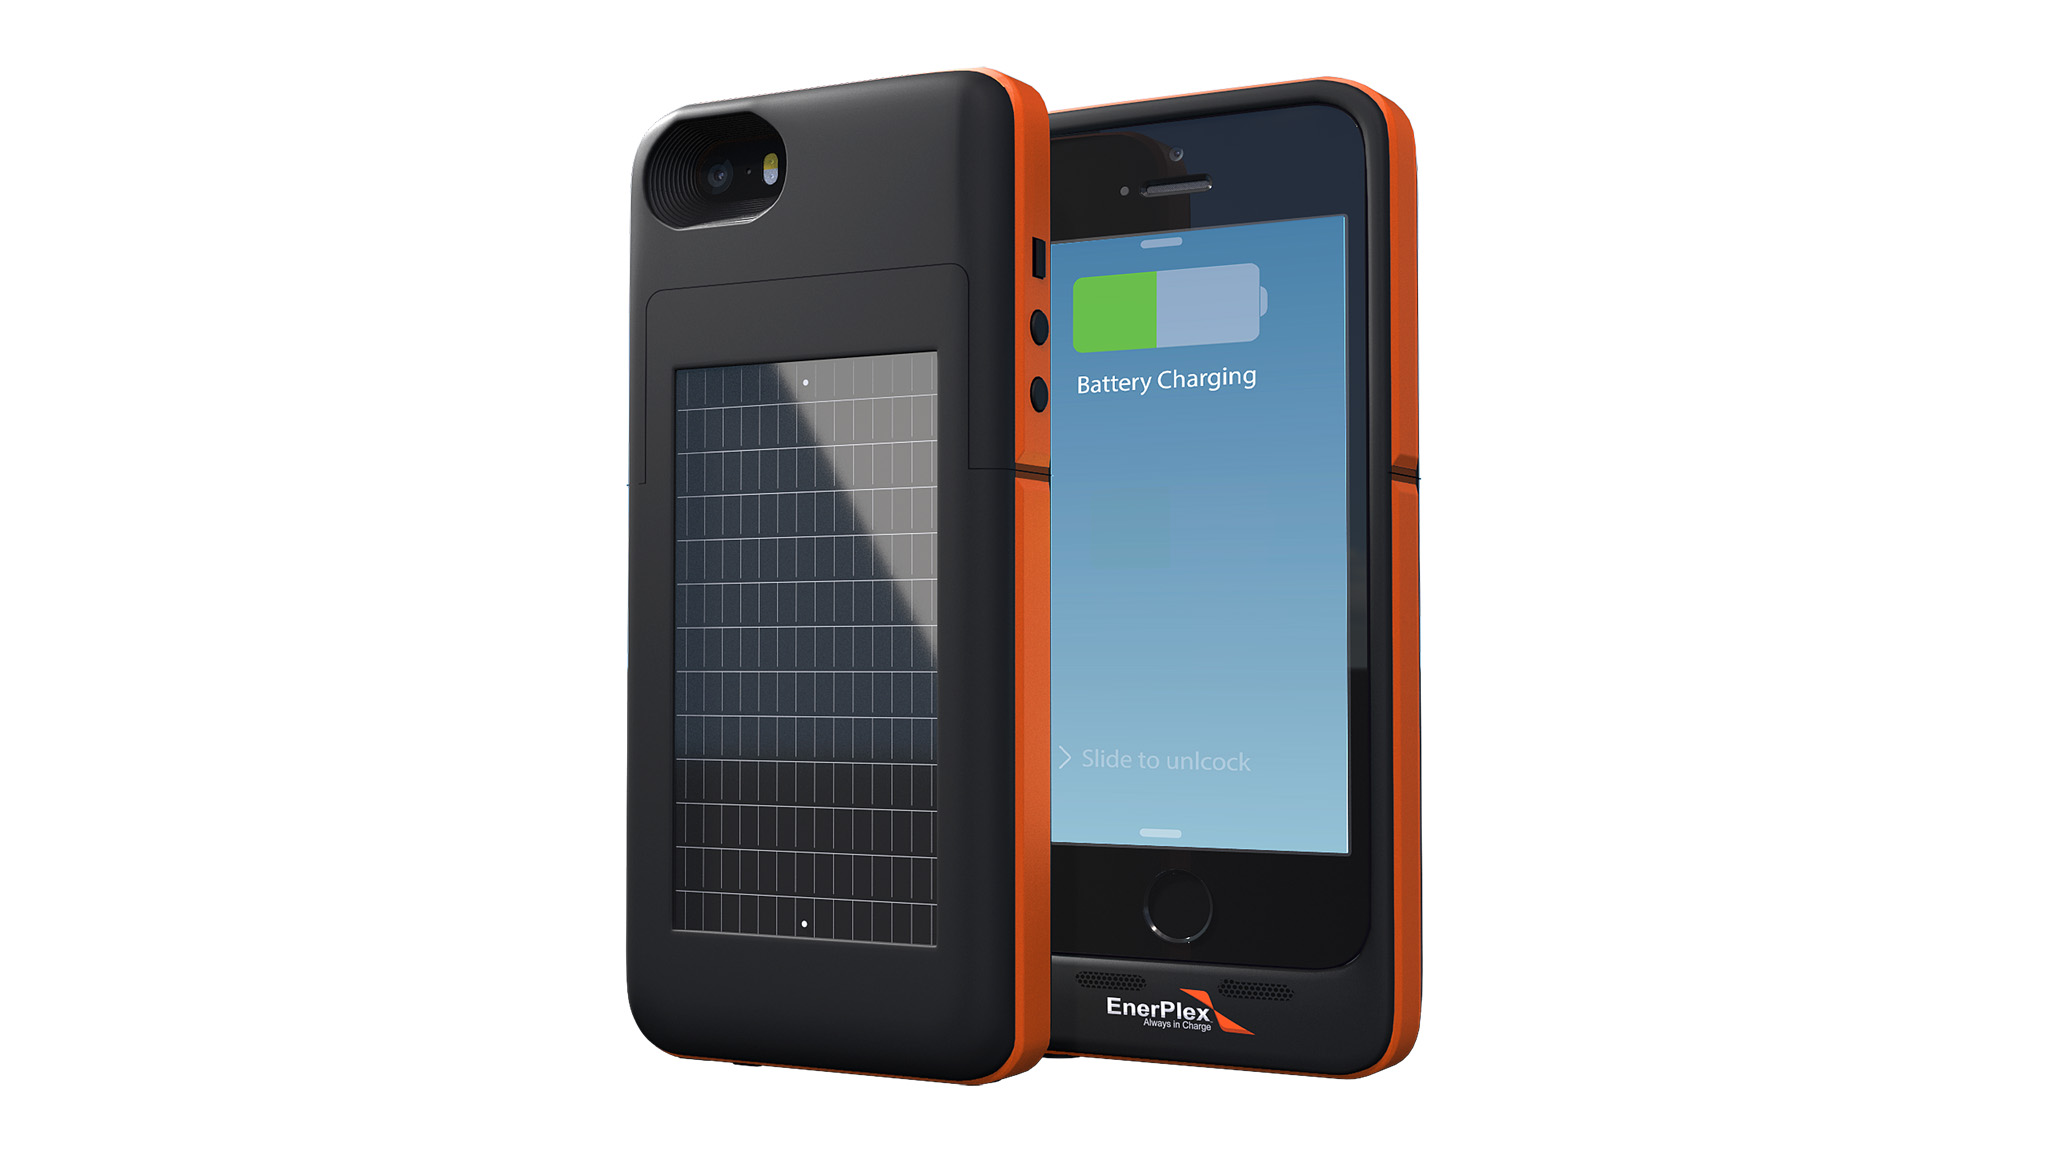 SURFR_iPhoneSE_1_ORANGE_2k.jpg